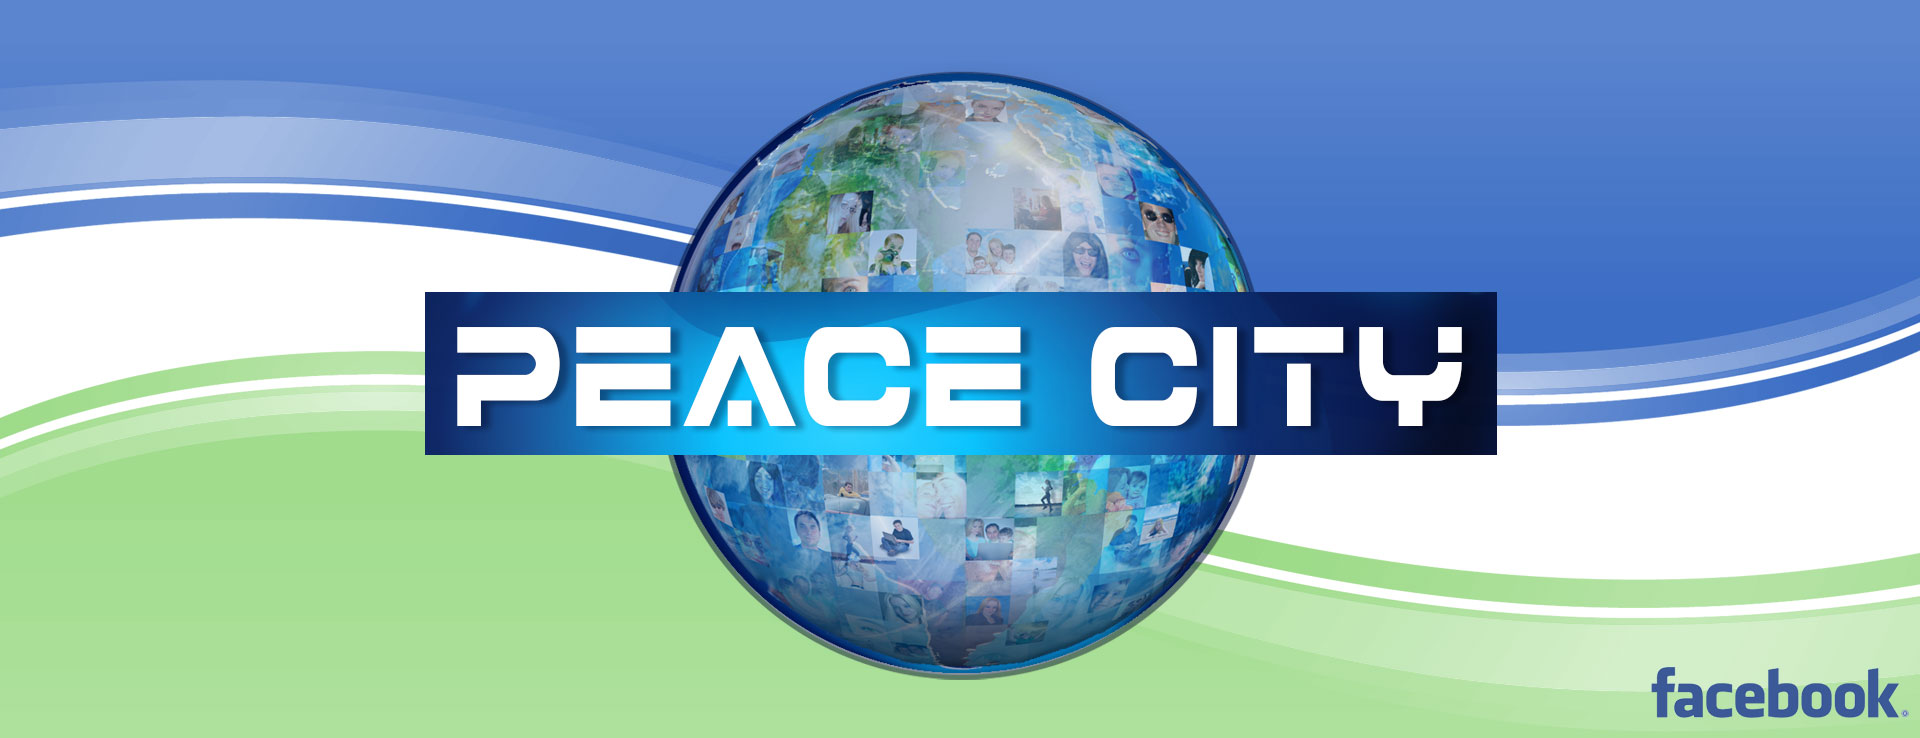 PEACE-CITY-INTERNATIONAL-COMMUNITY-LOGO-2017